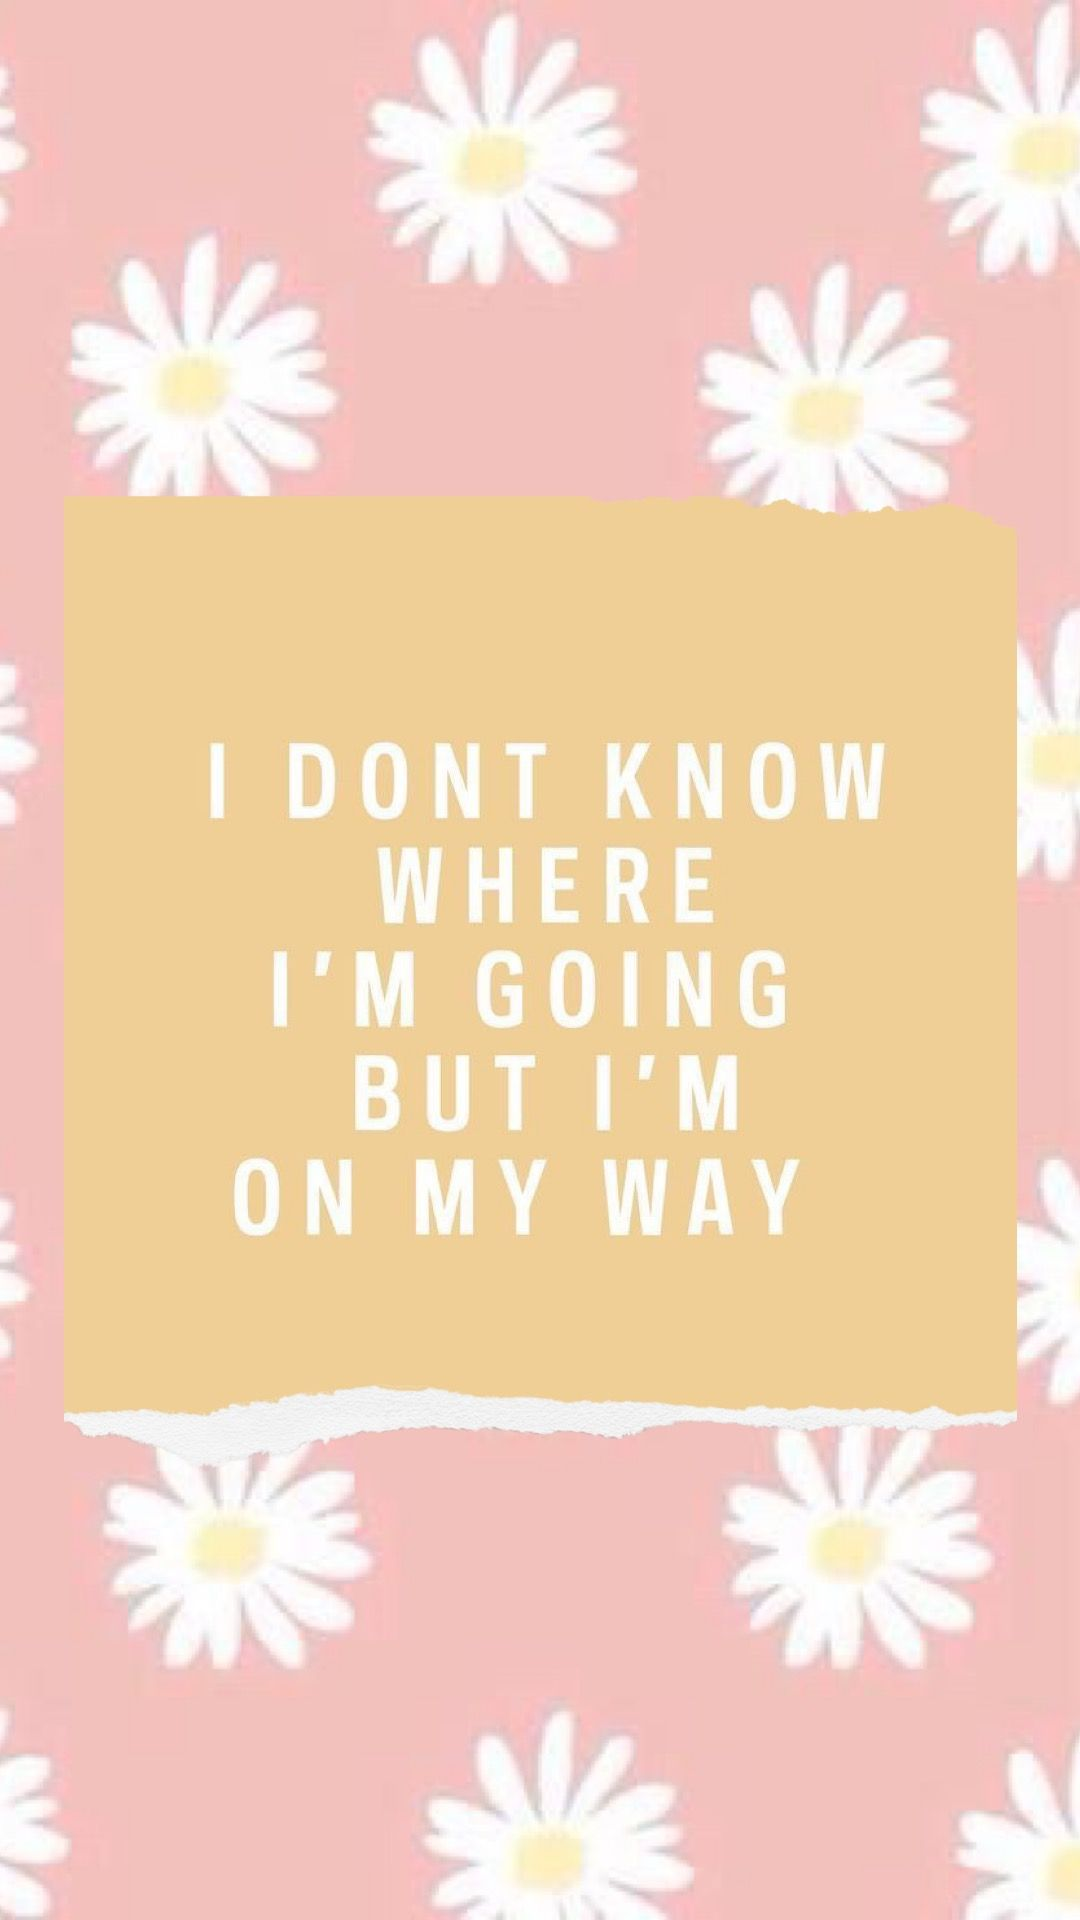 I don't know where I'n going but I'm on my way #inspiration #inspirationalquotes #motivationalquotes #motivationmonday #success #successquotes